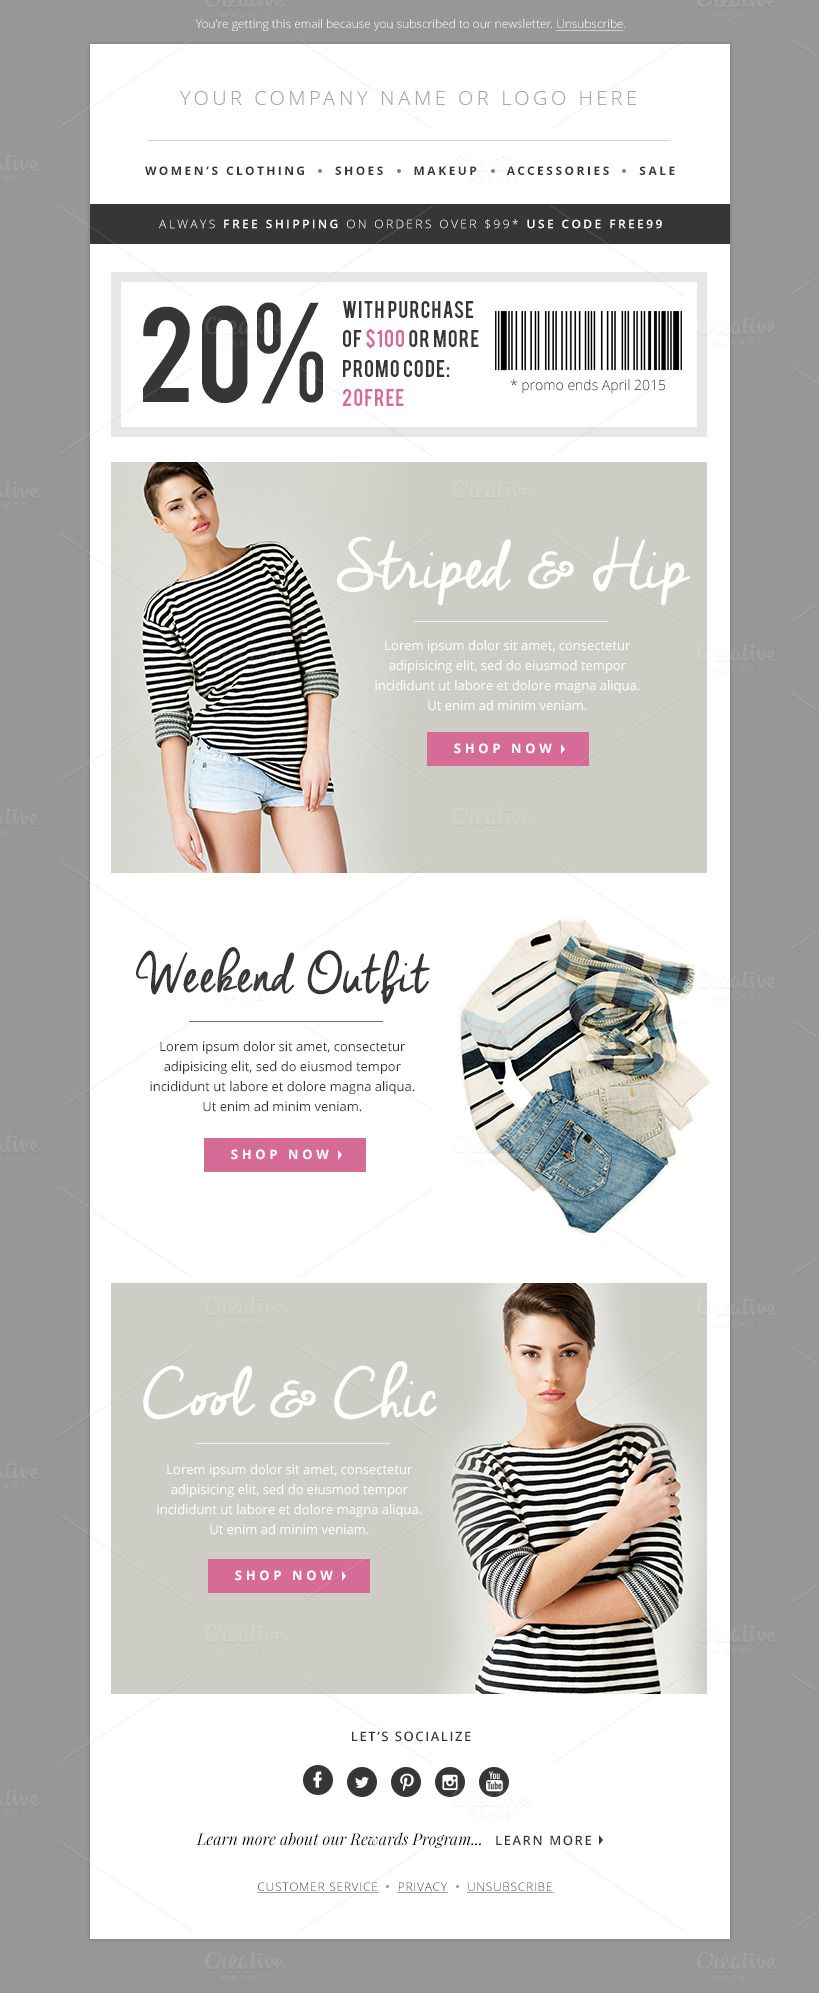 Sales Fashion EMail Template Psd By Jannalynncreative On Creative